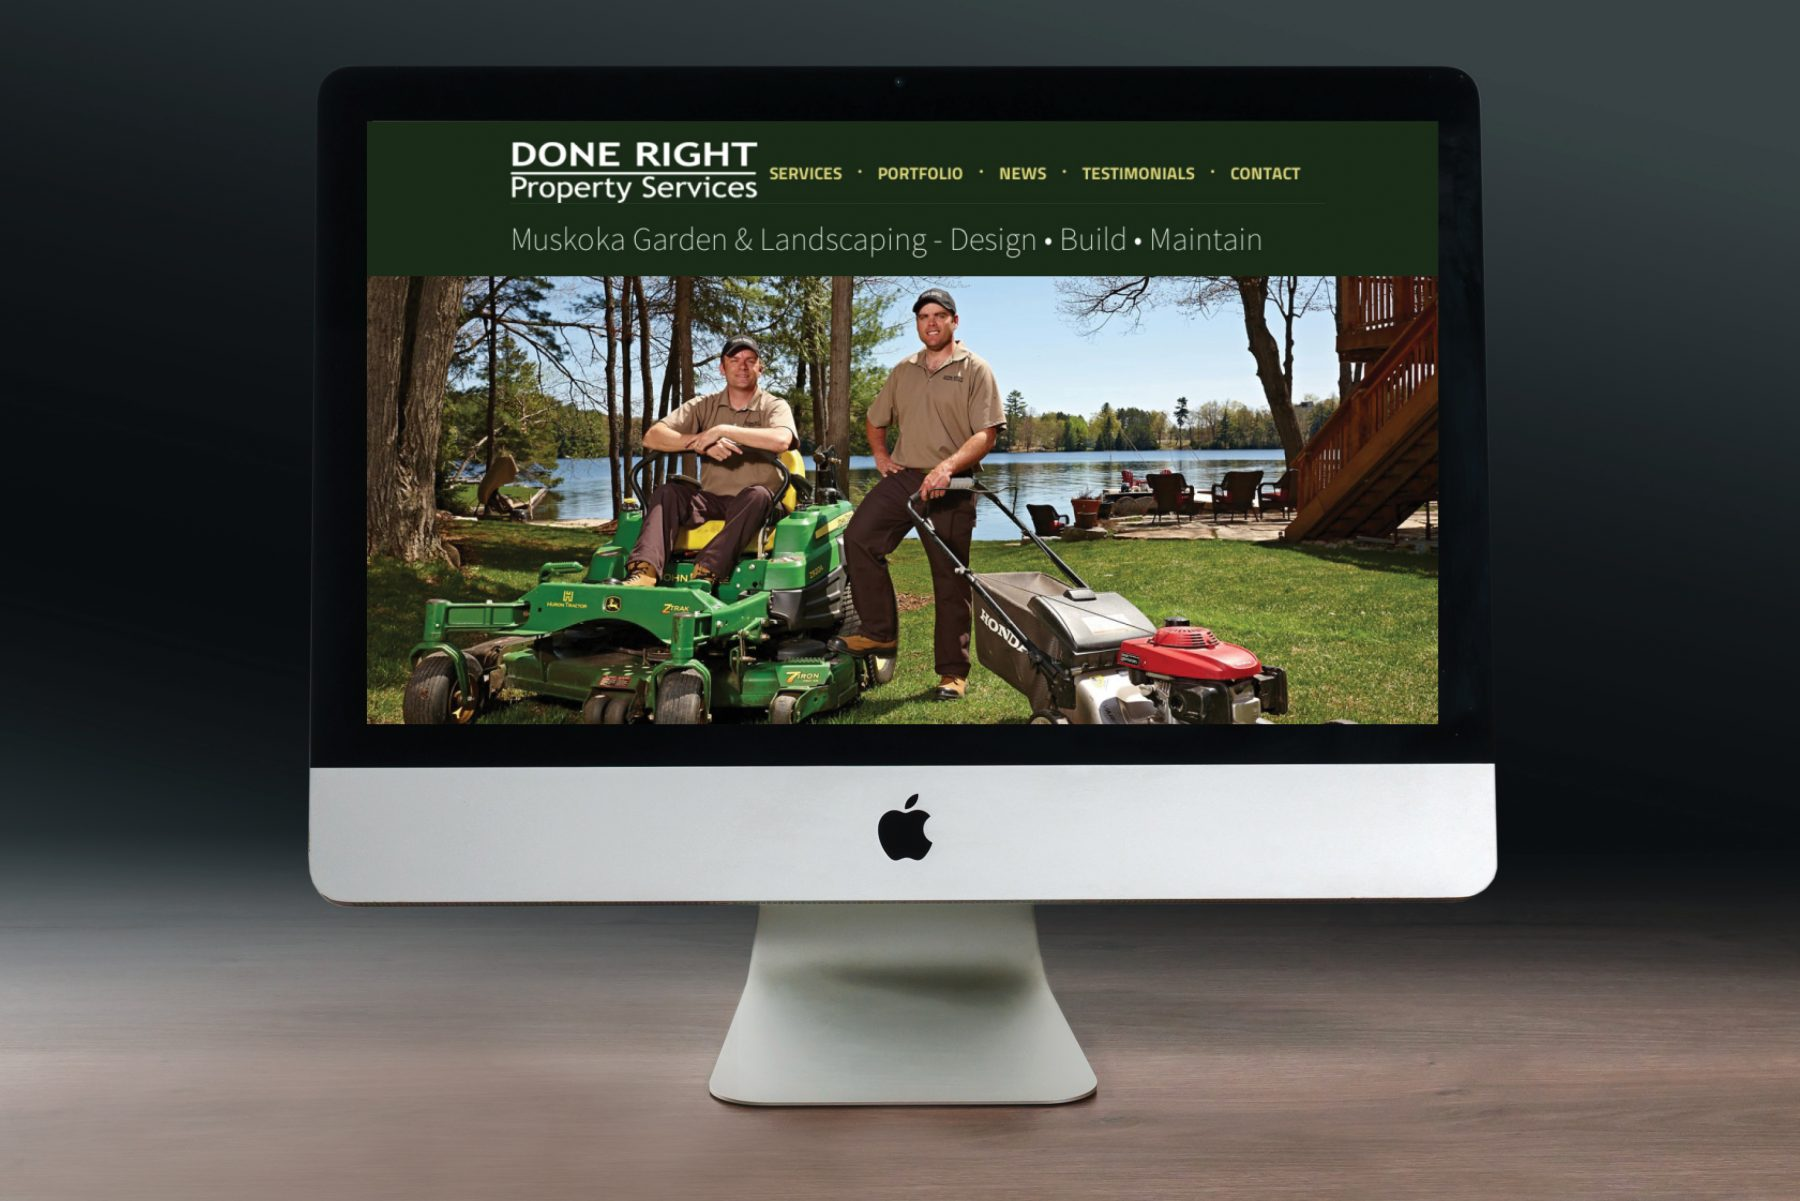 Done Right Property Services Website